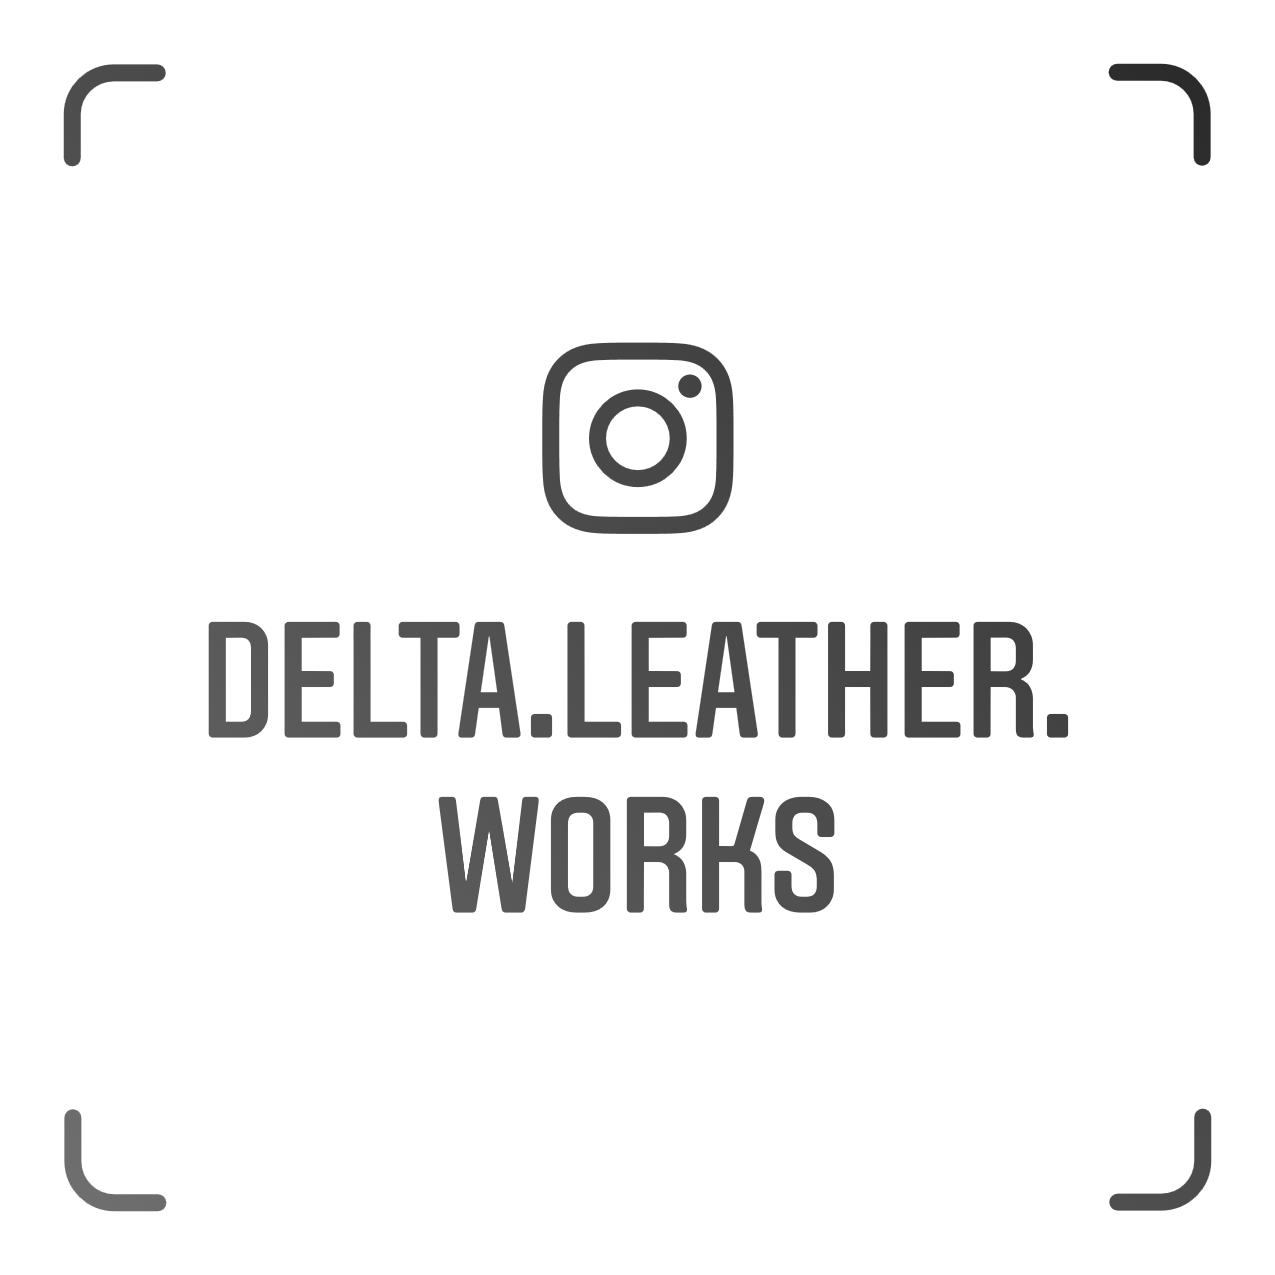 delta.leather.works_nametag.png